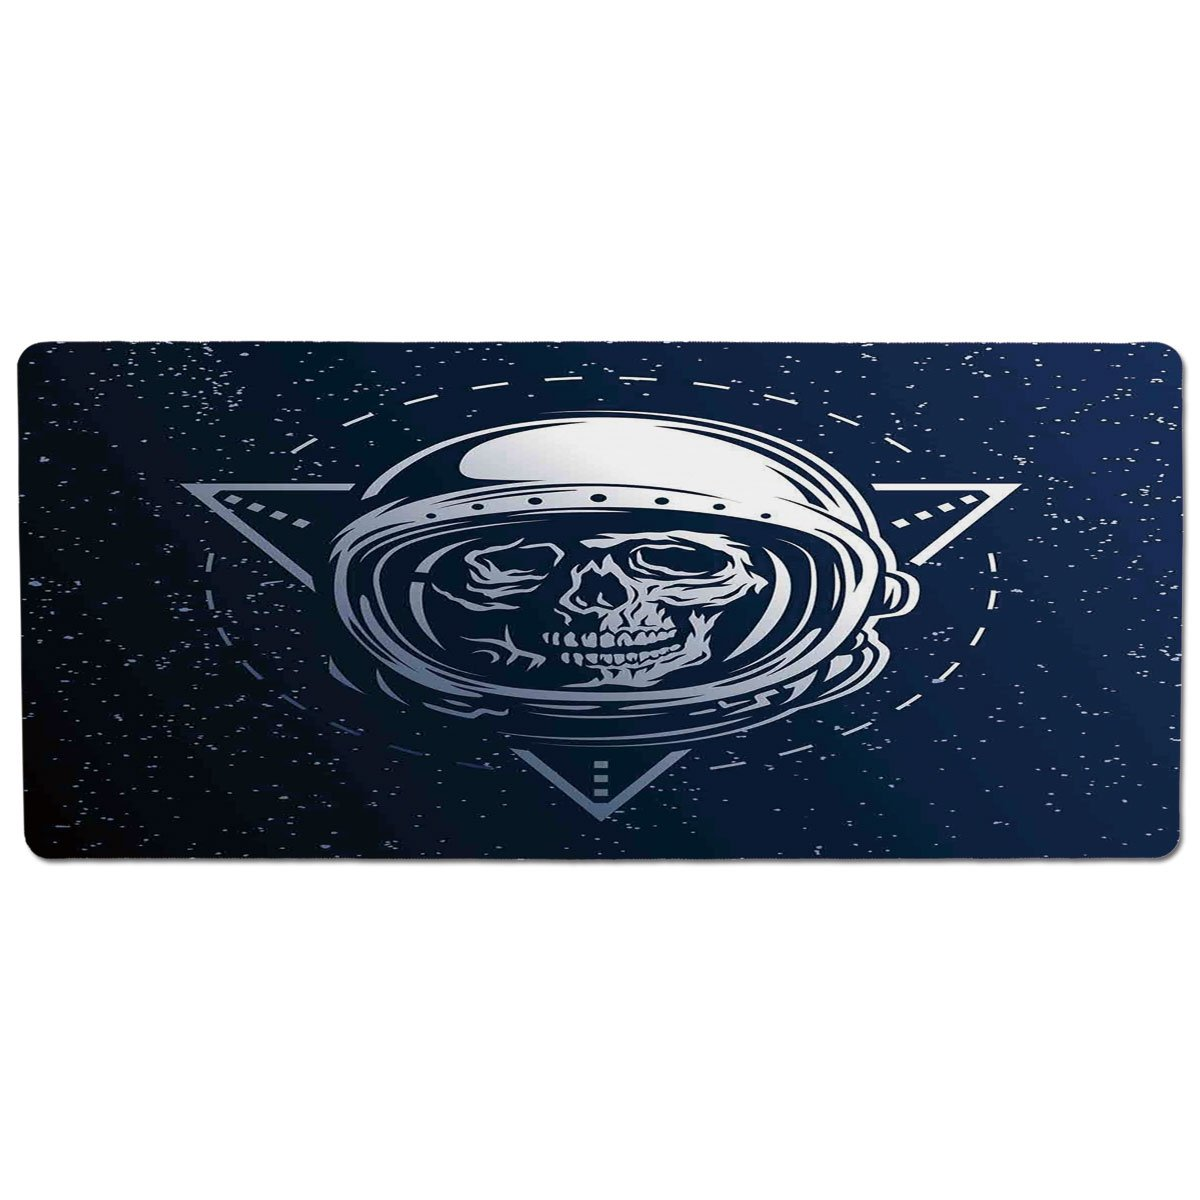 35.4\ iPrint Pet Mat for Food and Water,Outer Space Decor,Dead Skull Head Icon Cosmonaut Helmet Astronomy Terrestrial Horror Image,Grey bluee,Rectangle Non-Slip Rubber Mat for Dogs and Cats